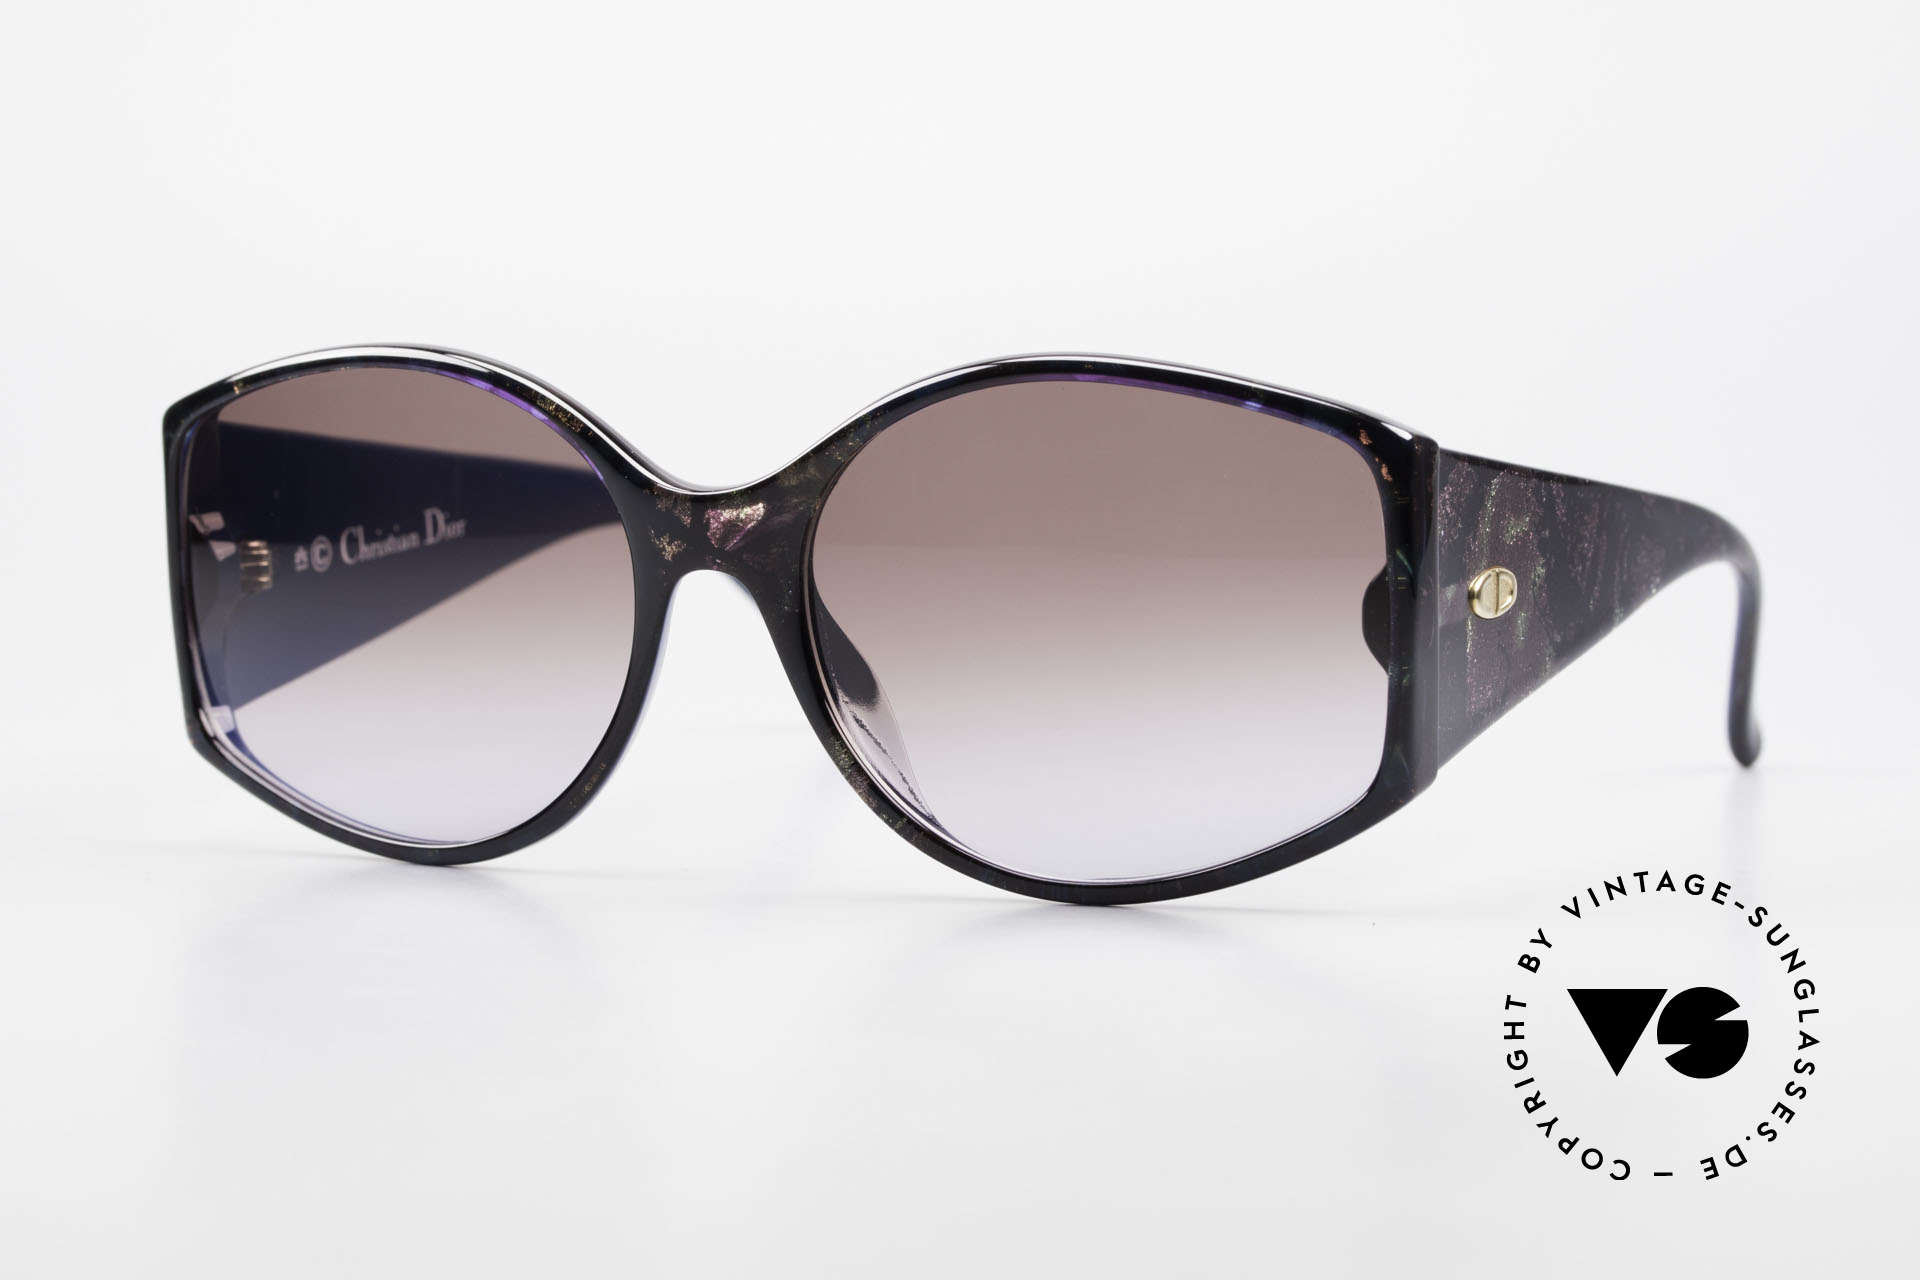 Christian Dior 2435 Ladies Designer Sunglasses 80's, magnificent DIOR vintage sunglasses from 1988, Made for Women